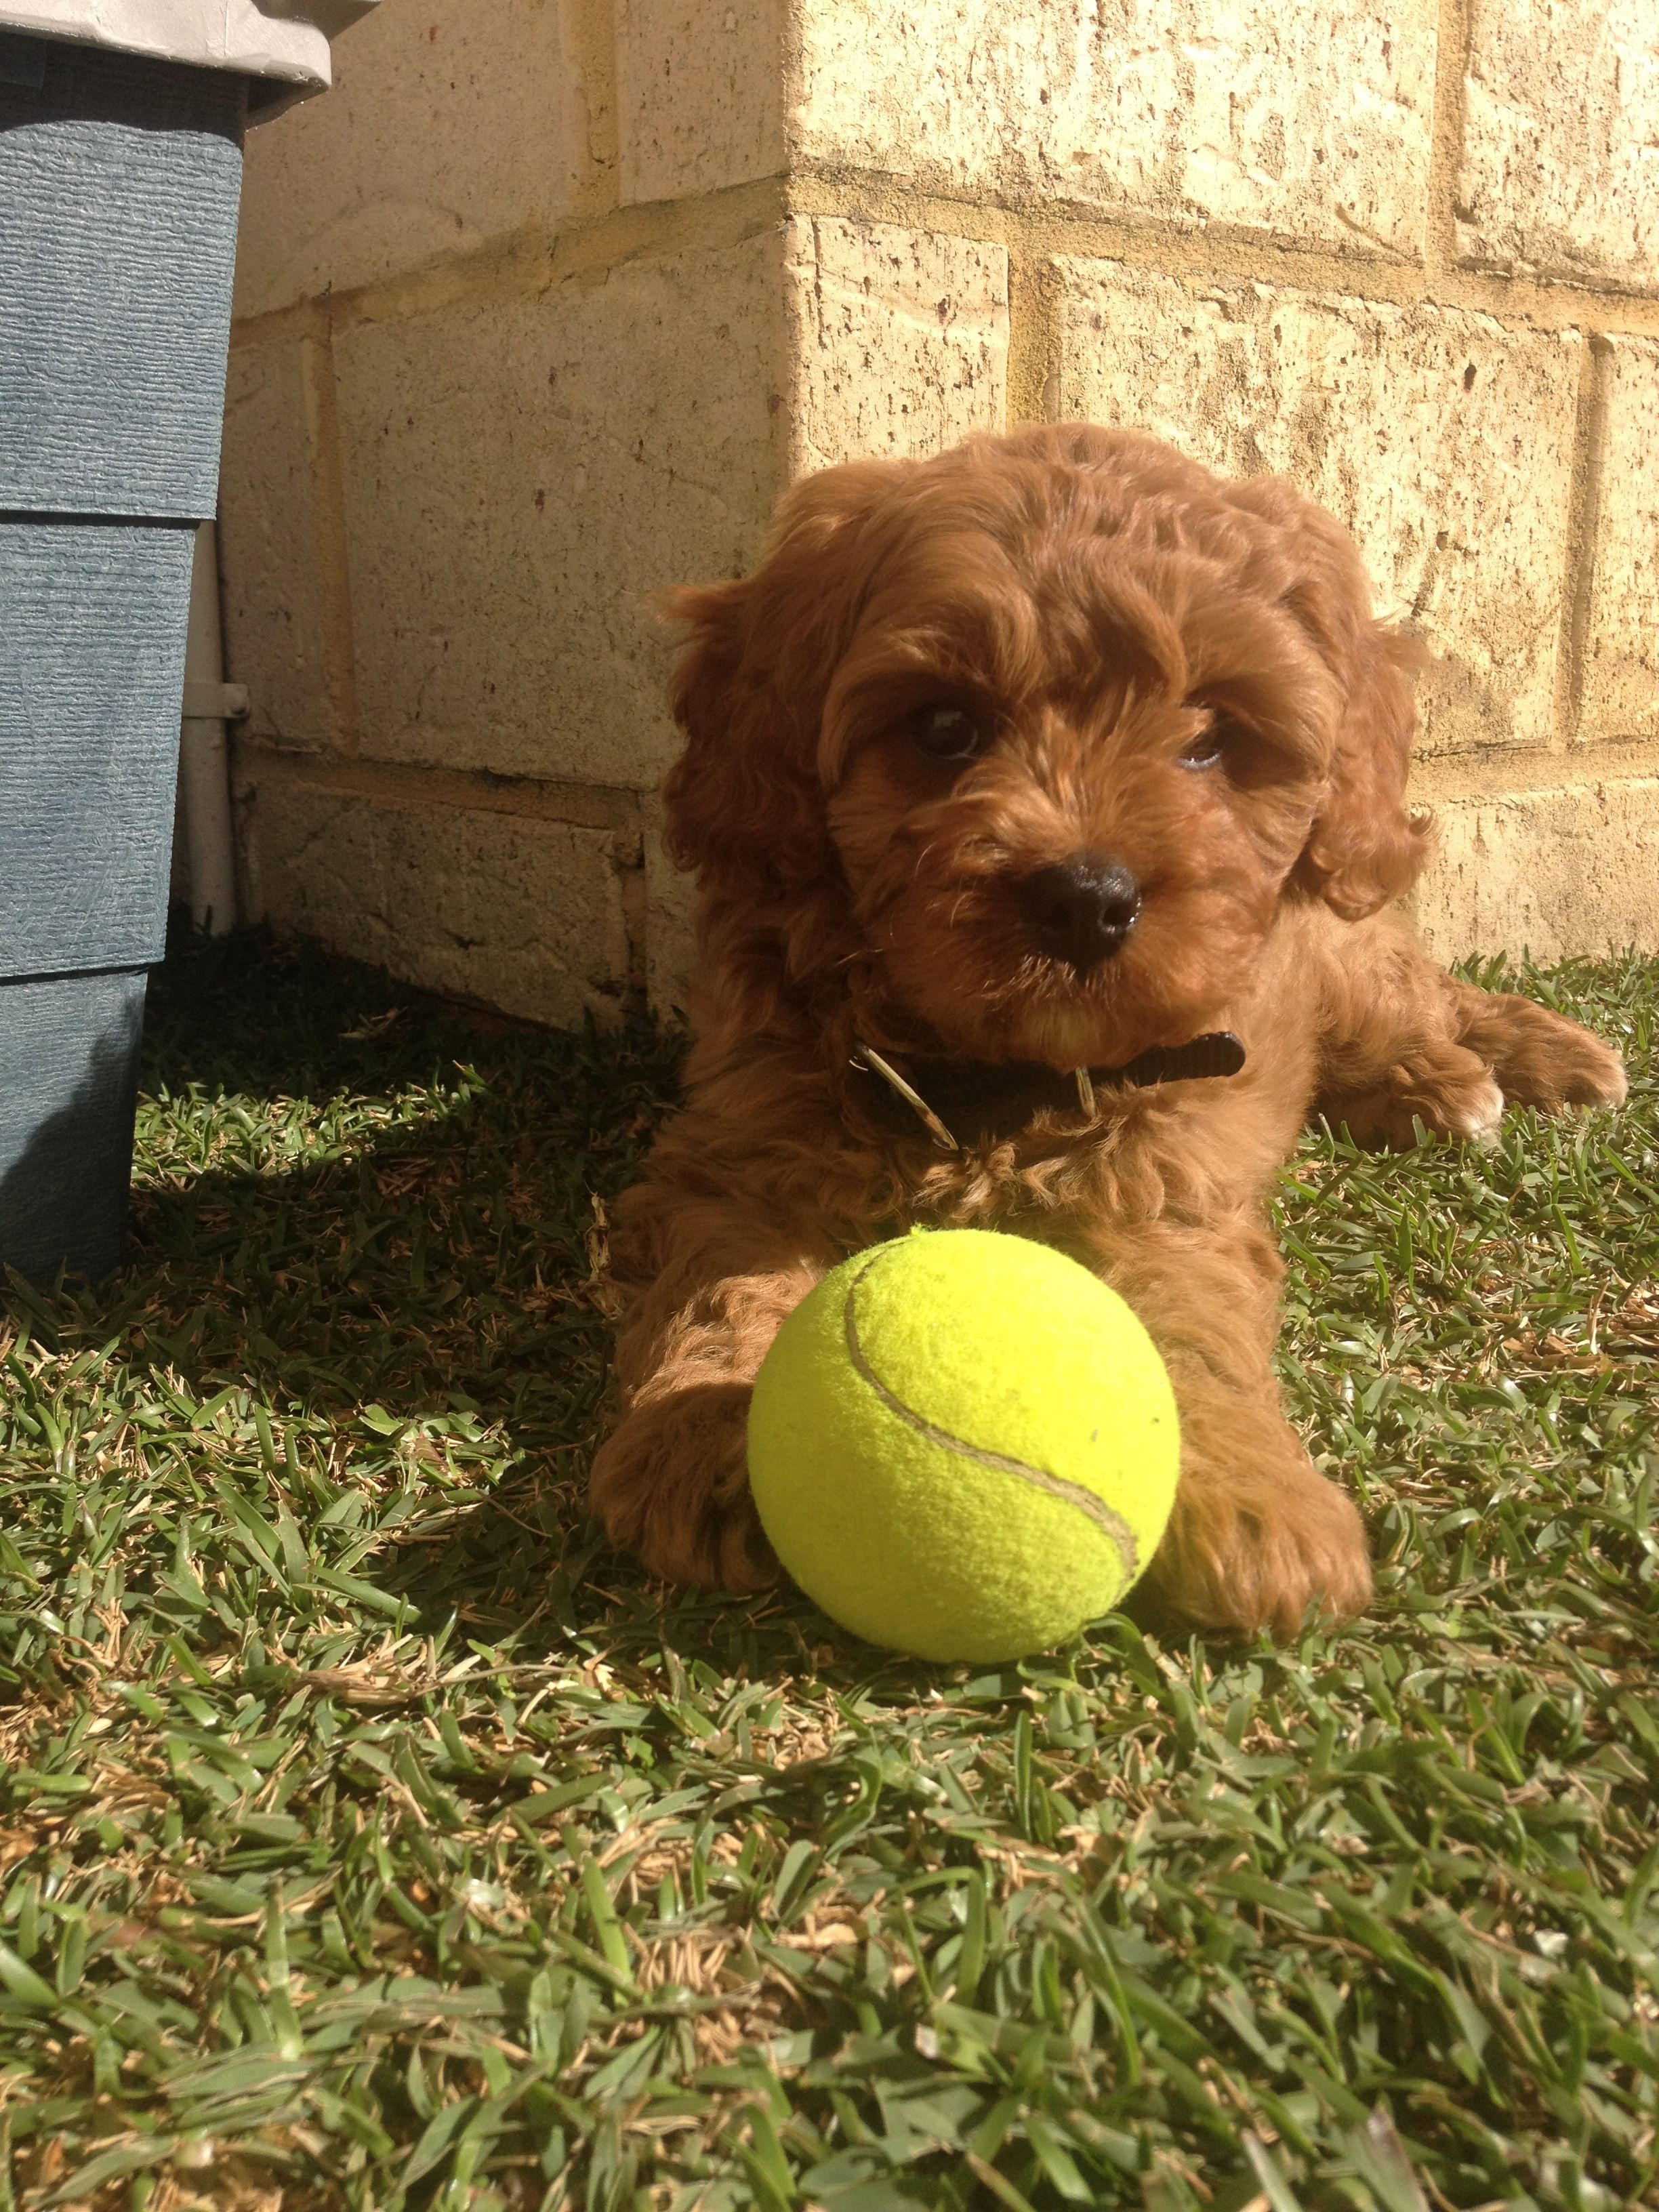 My 8 week old cavoodle and his tennis ball. Doodle dog